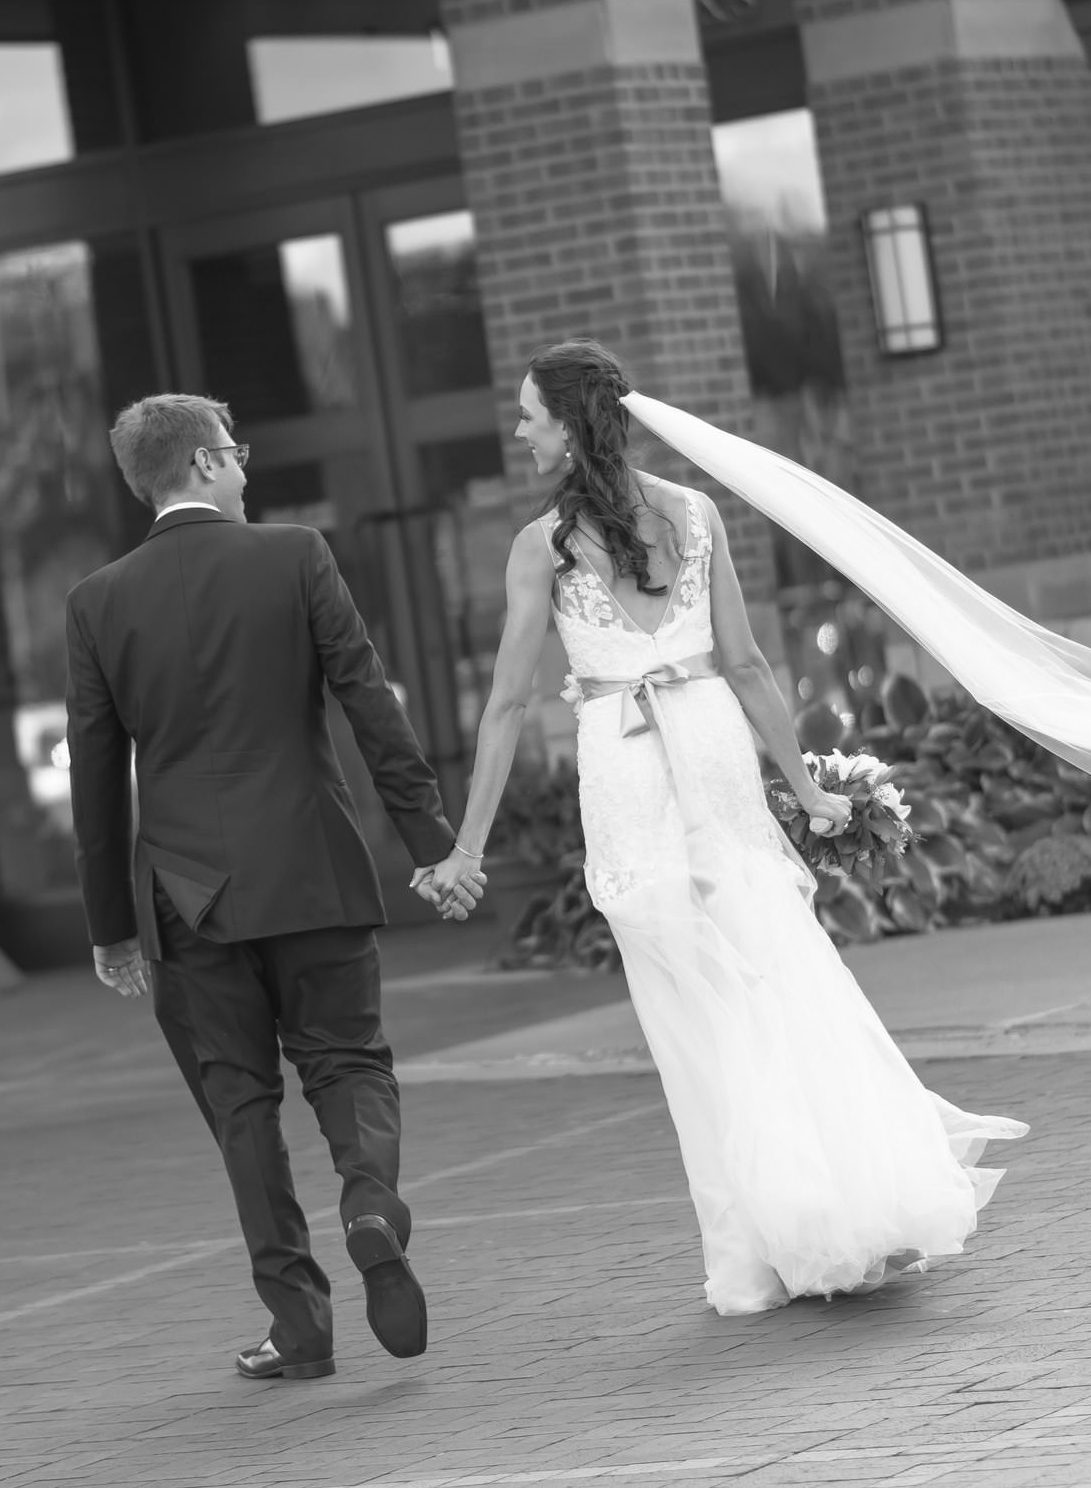 Bride And Groom Walking Hand-In-Hand